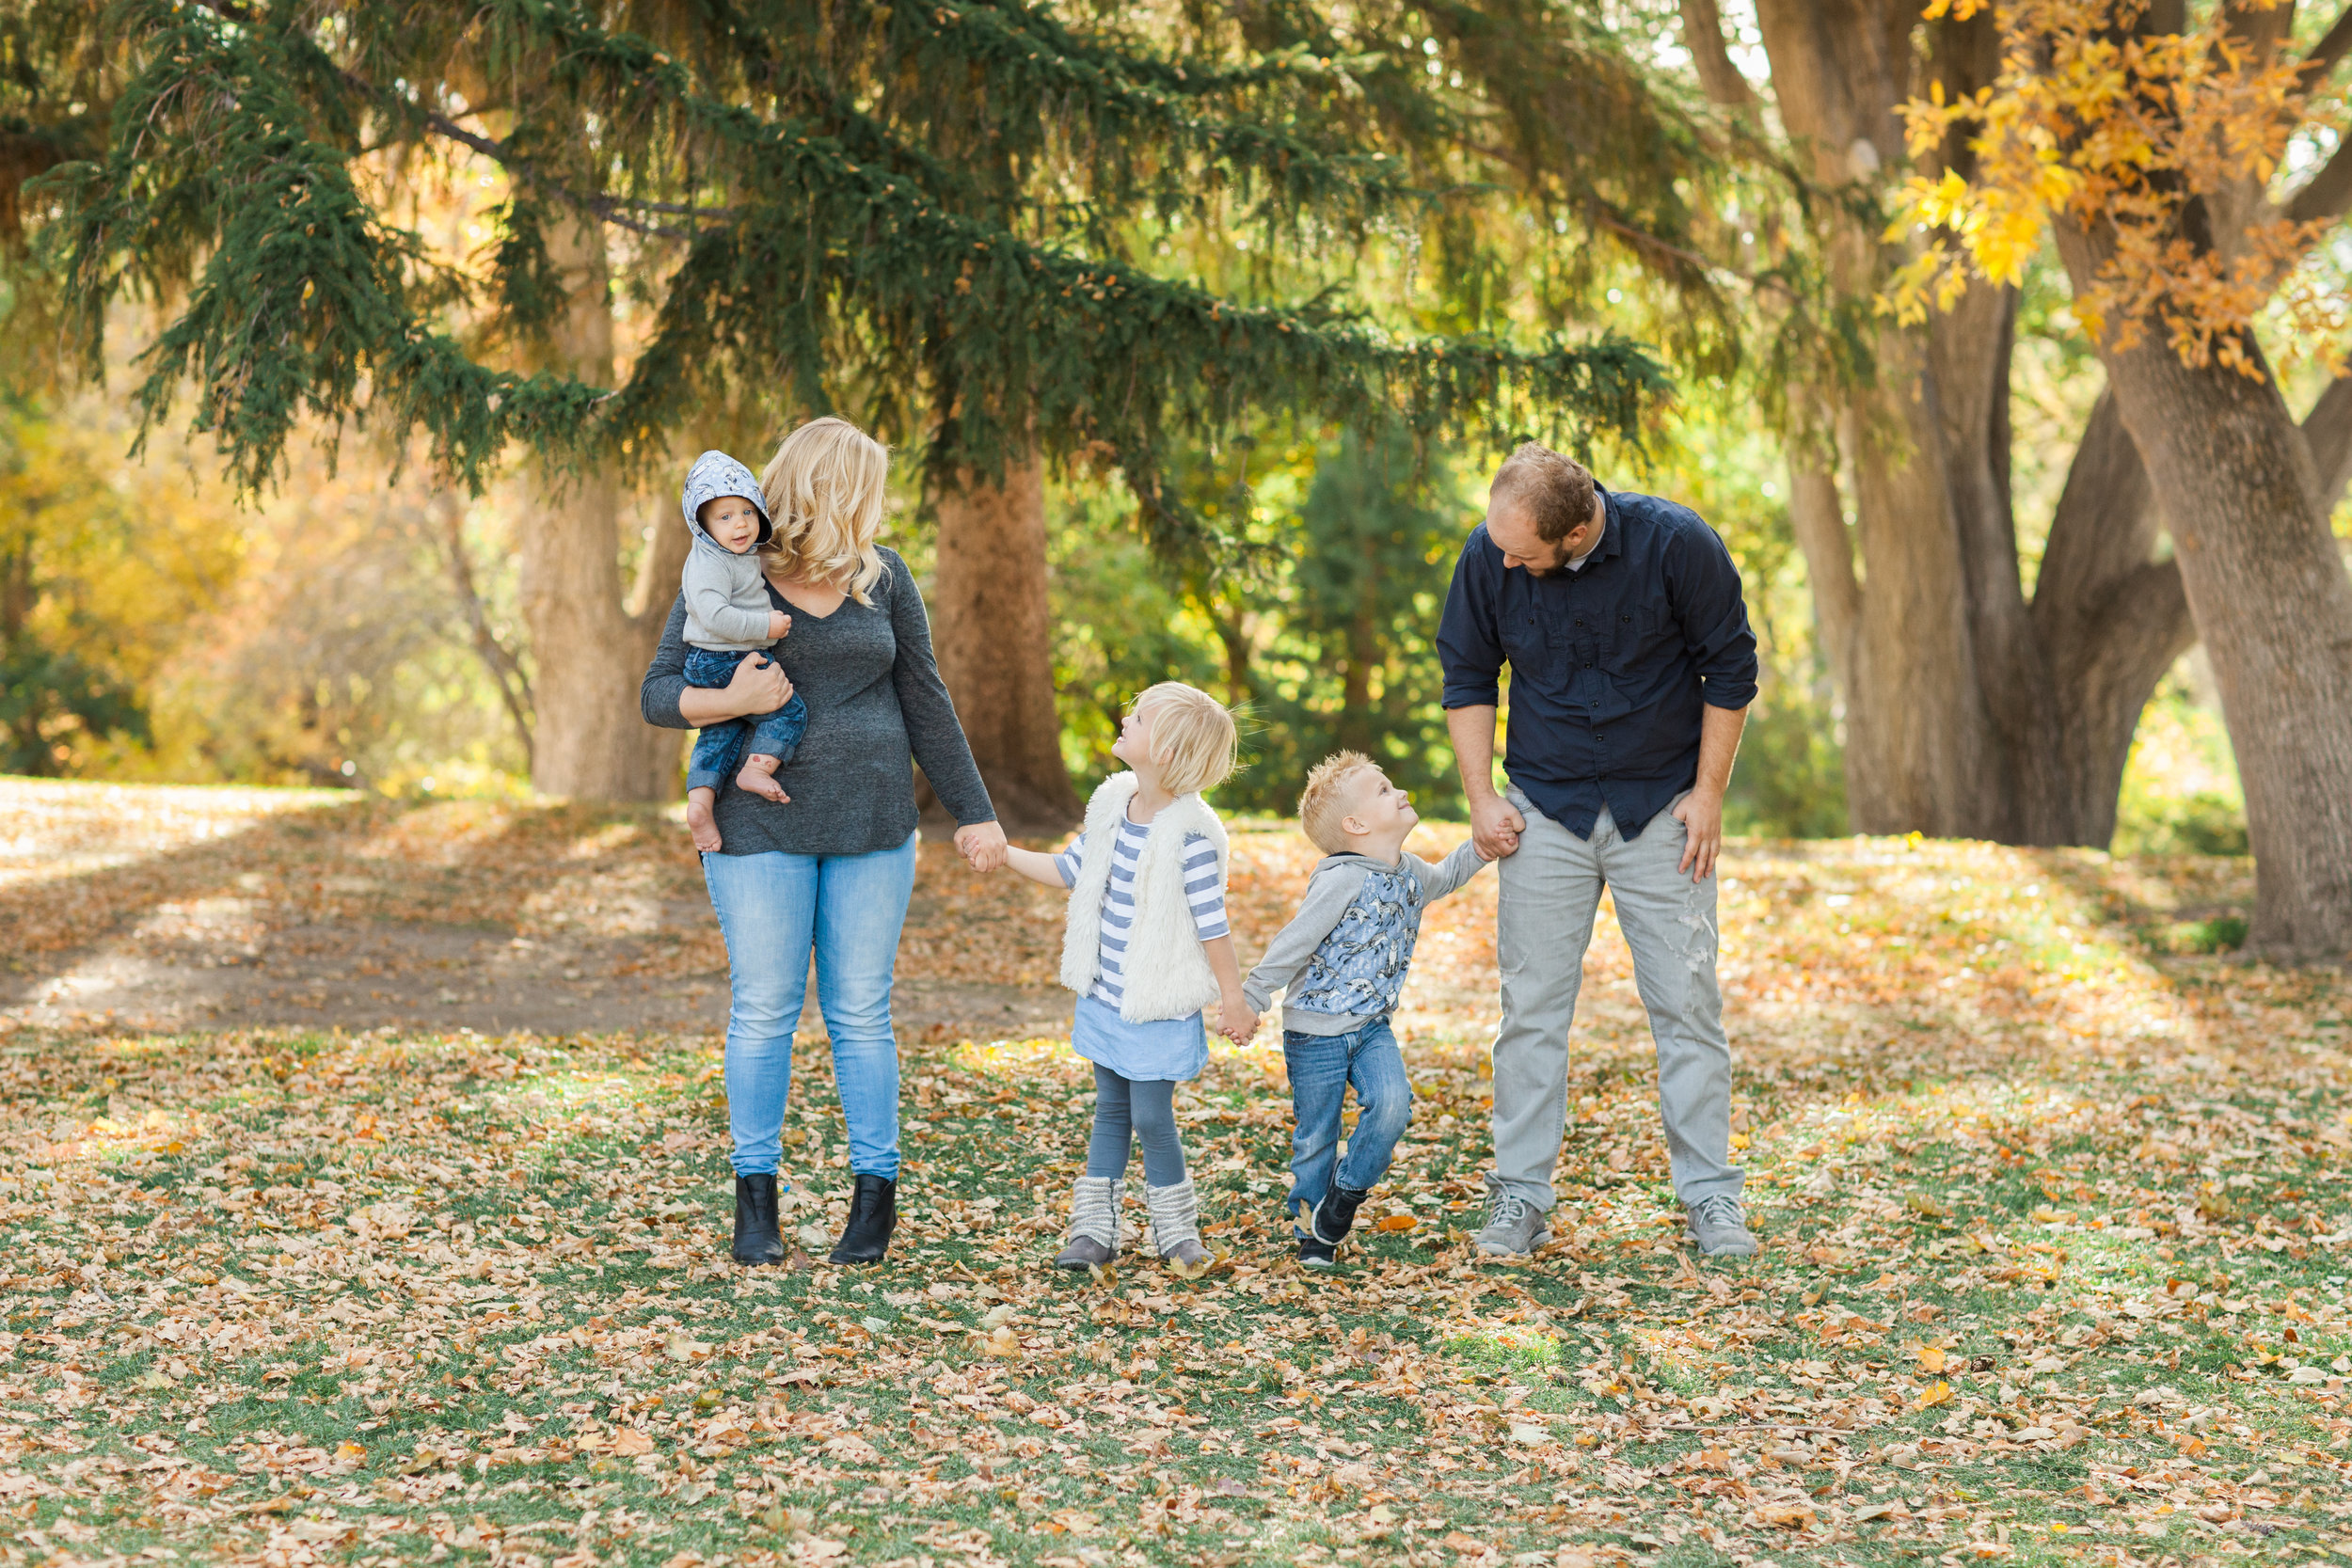 Families - Up to 60 minutes of shoot time, 40+ beautifully edited images.(If you have more than 8 people, there will be an additional fee of $10 per person.)(If scheduled on a weekday, you'll get a $20 discount!)$175 + tax